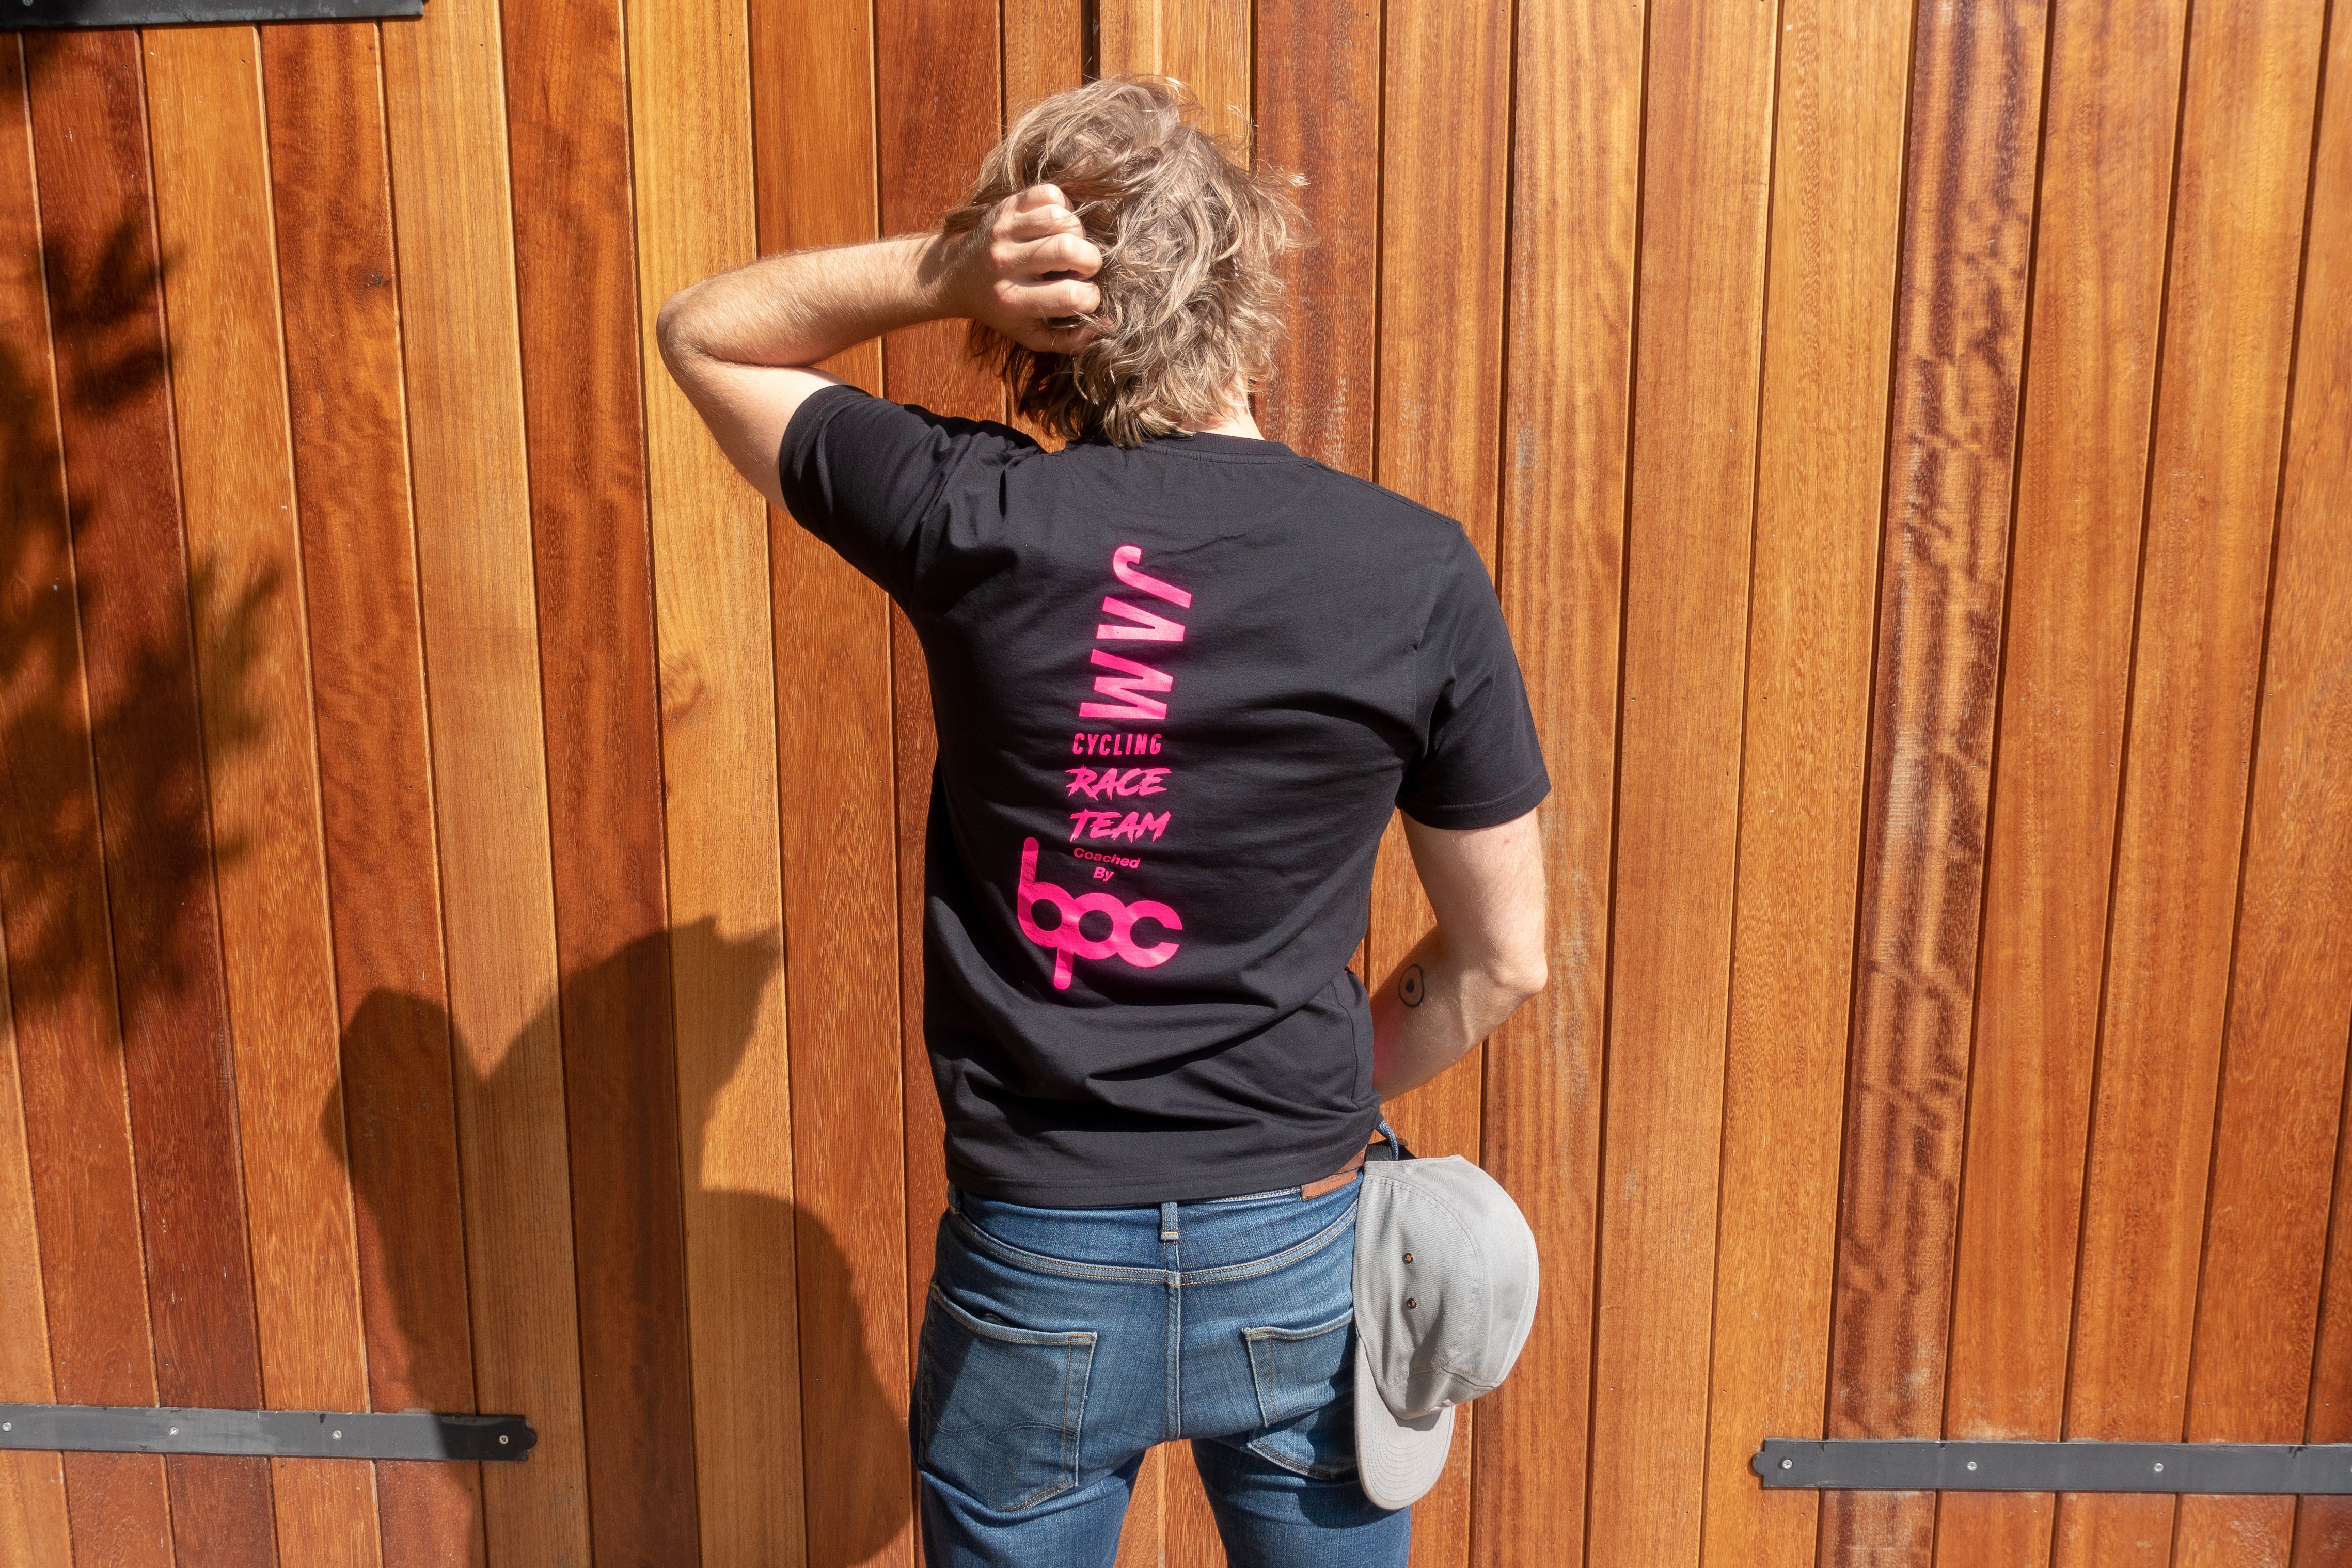 Black JAM Race team t-shirt featuring HOT logos  worn by Jam CEO with blue jeans and brown beltagainst barn door